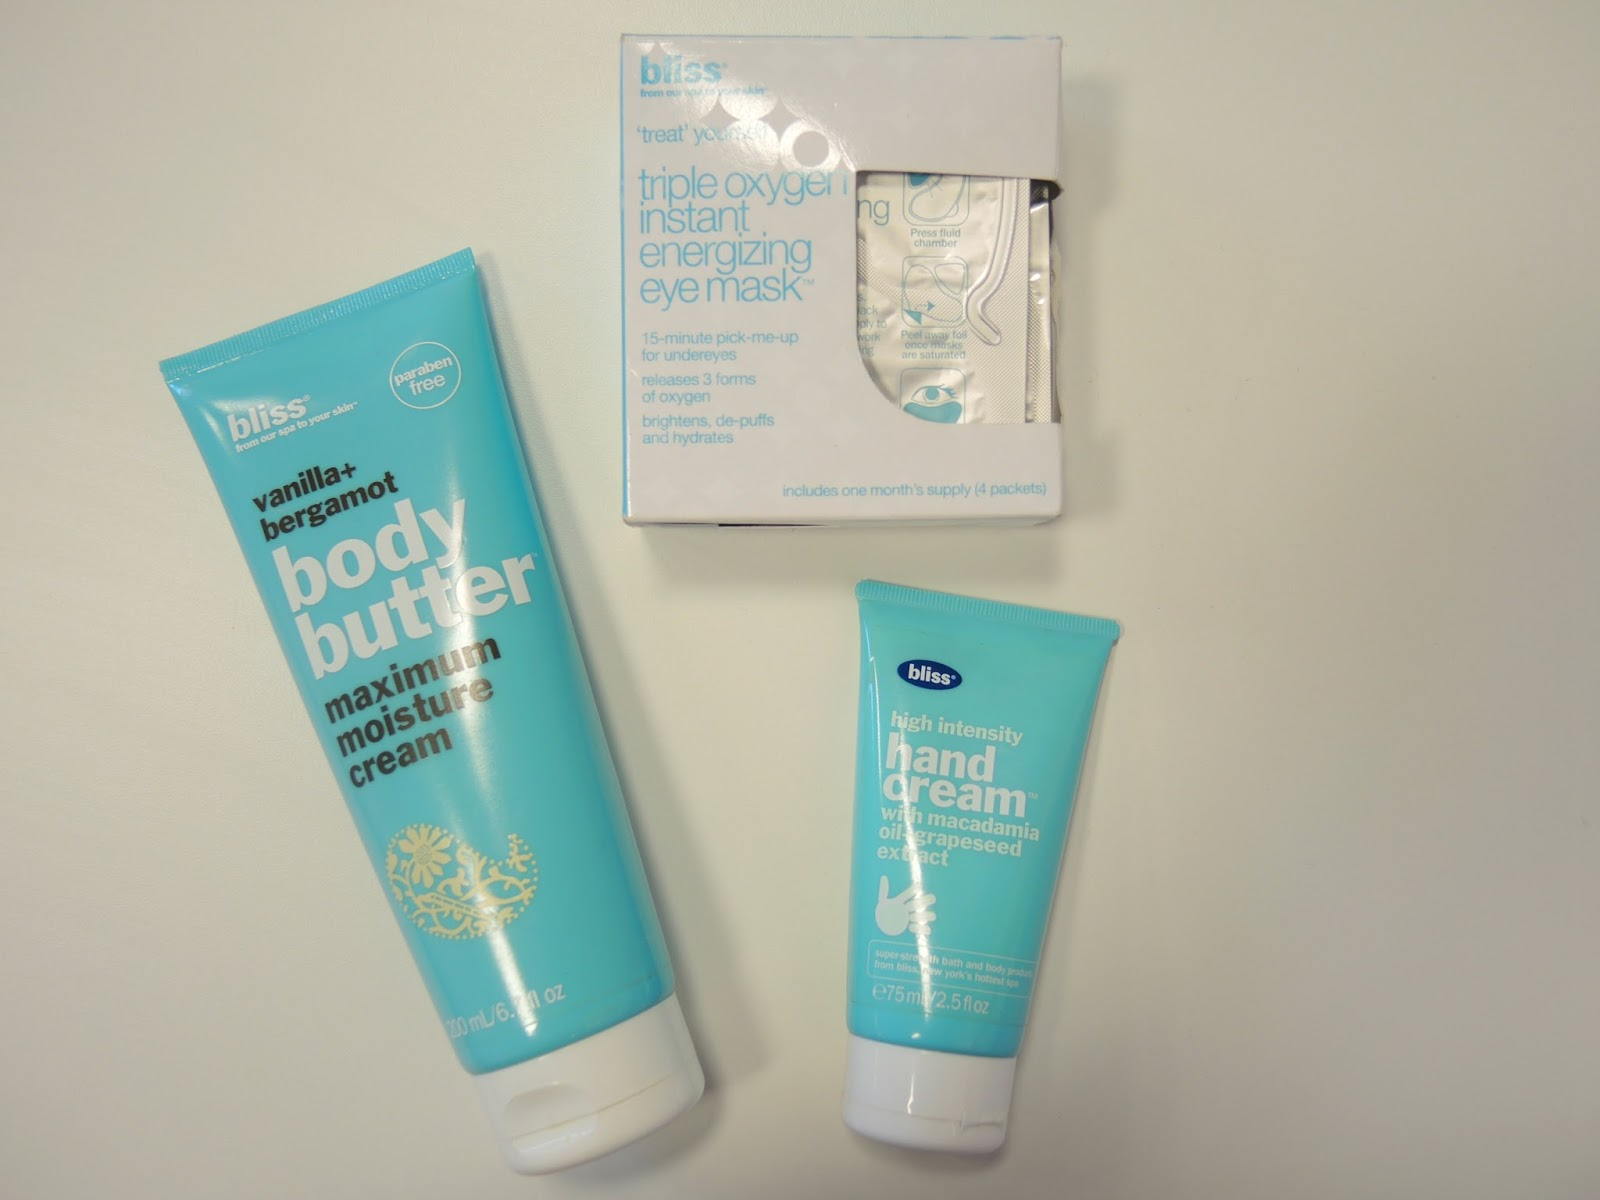 Bliss Haul, Vanilla & Bergamot Body Butter, High Intensity Hand Cream, Triple Oxygen Instant Energizing Eye Mask